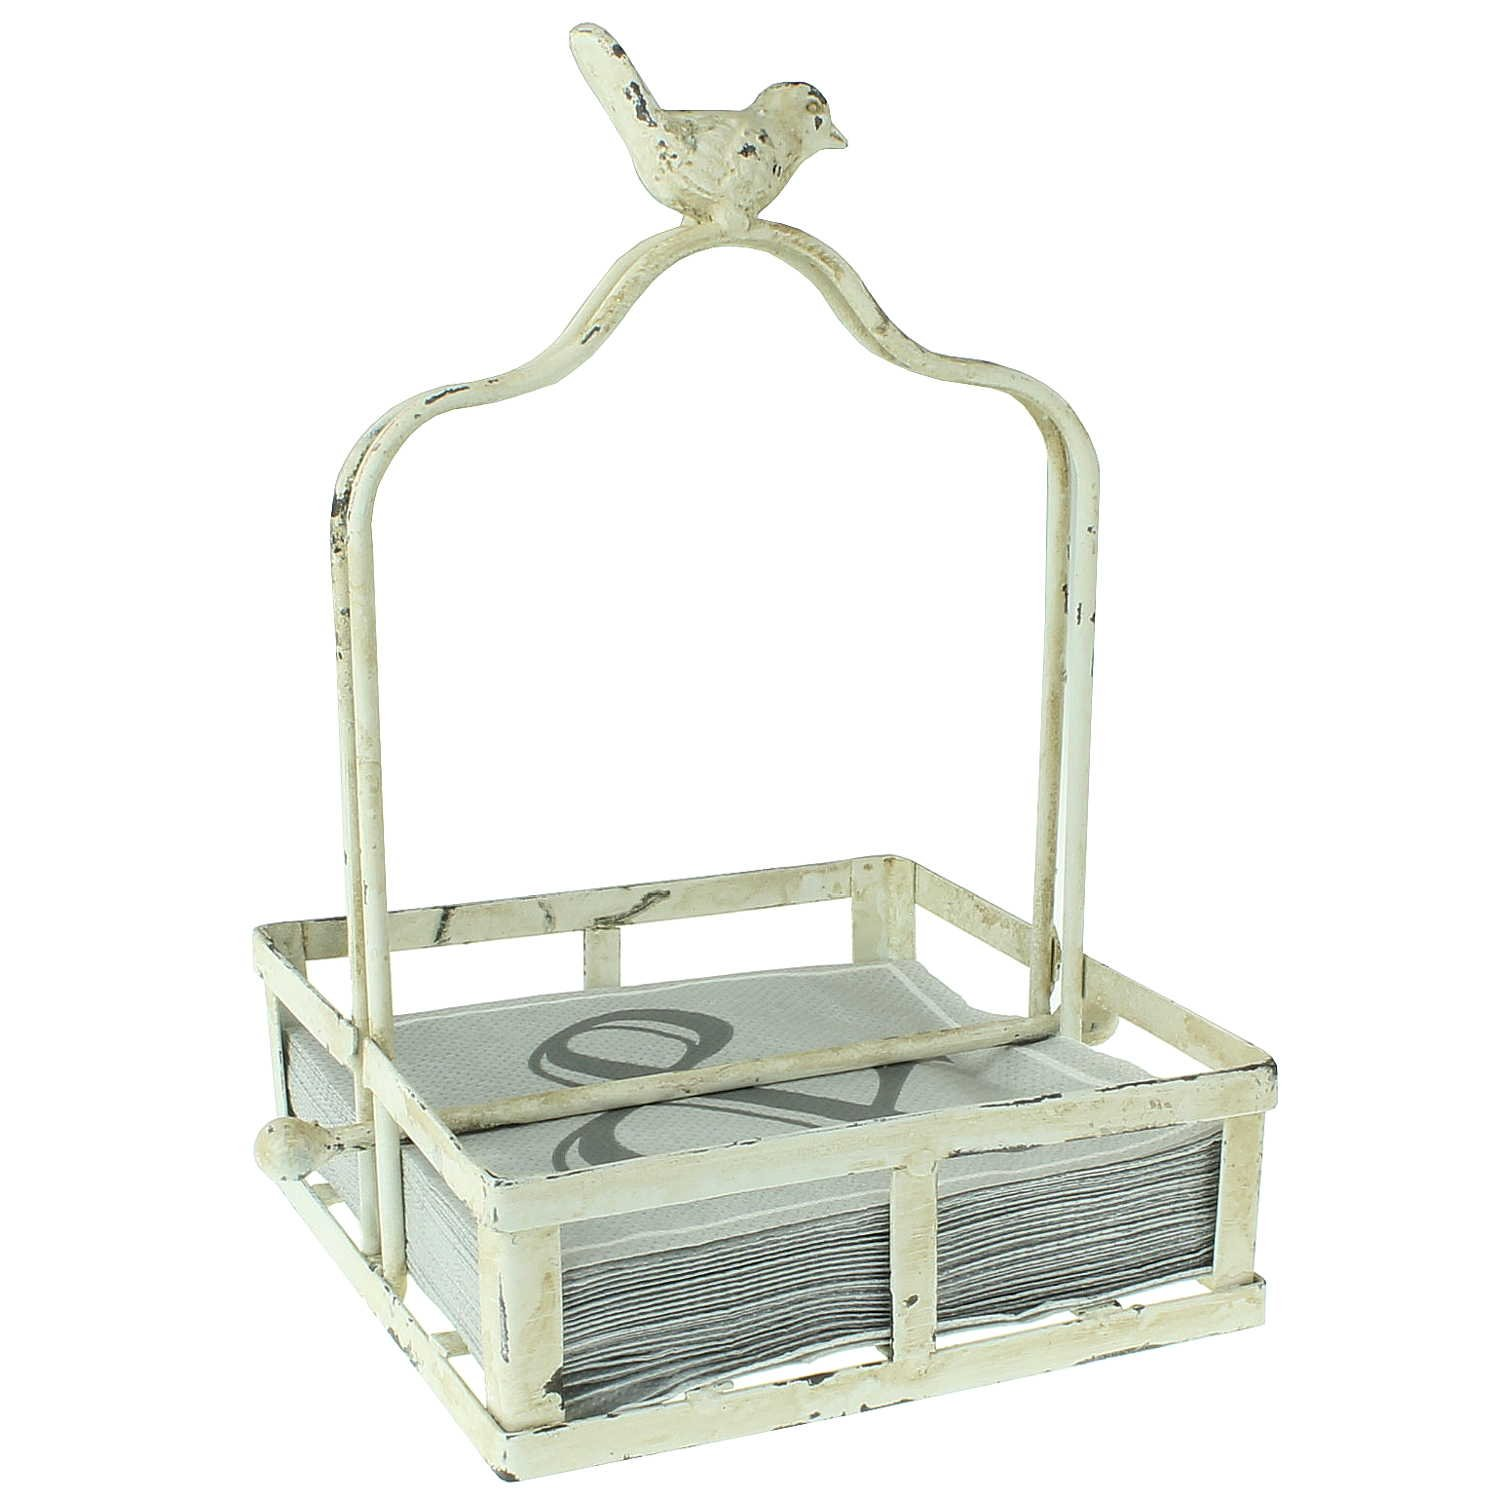 Beautiful Antique Napkins Cream White Stand. With a Bird. Nostalgia. Distressed Vintage Shabby Chic Metal Stand. Weight Lever. 17x 17cm Napkin Holder. Napkins Basket. MACOSA HOME